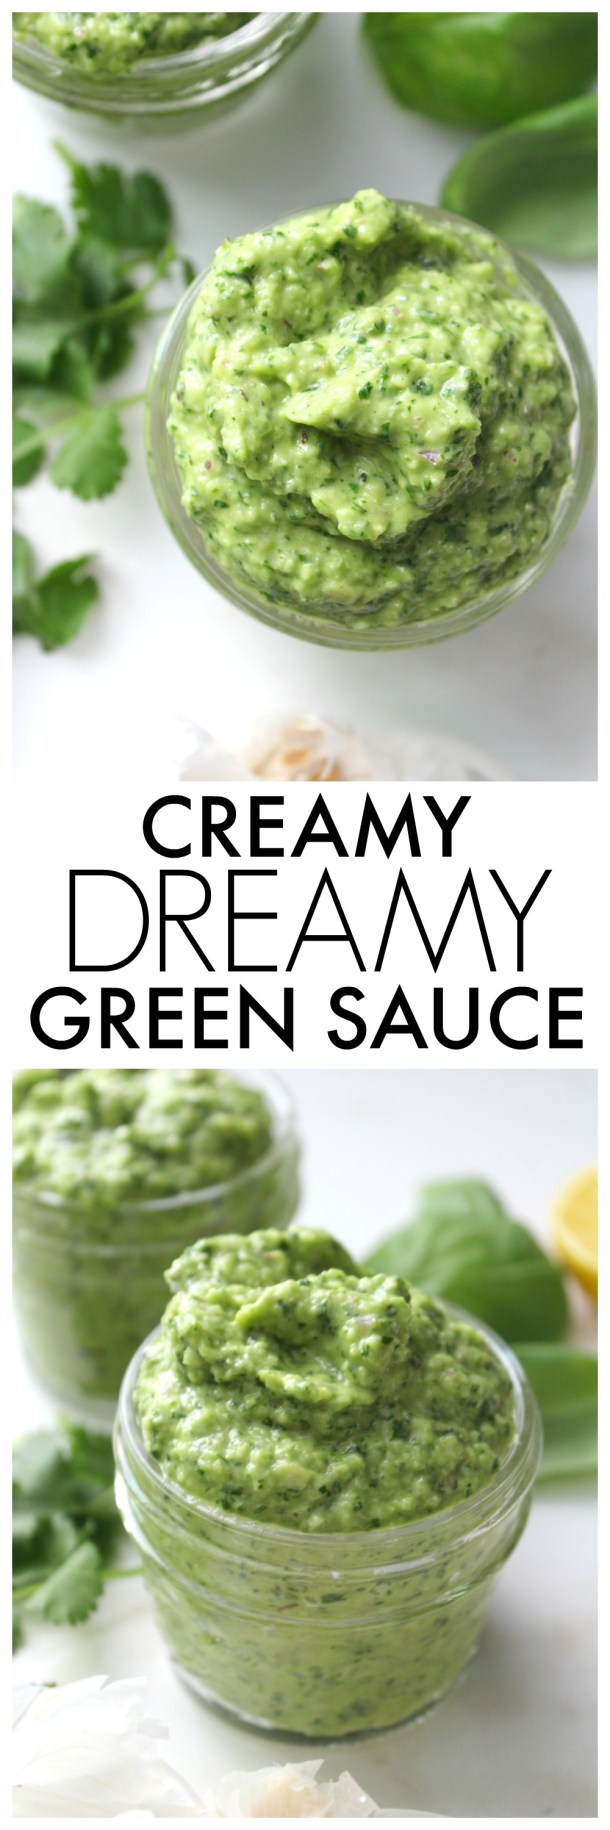 The perfect marinade, dressing or dip - this Creamy Dreamy Green Sauce is packed full of fresh herbs, avocado and a slight kick from jalapeño. Ready in 5 minutes | ThisSavoryVegan.com #sauce #dressing #vegan